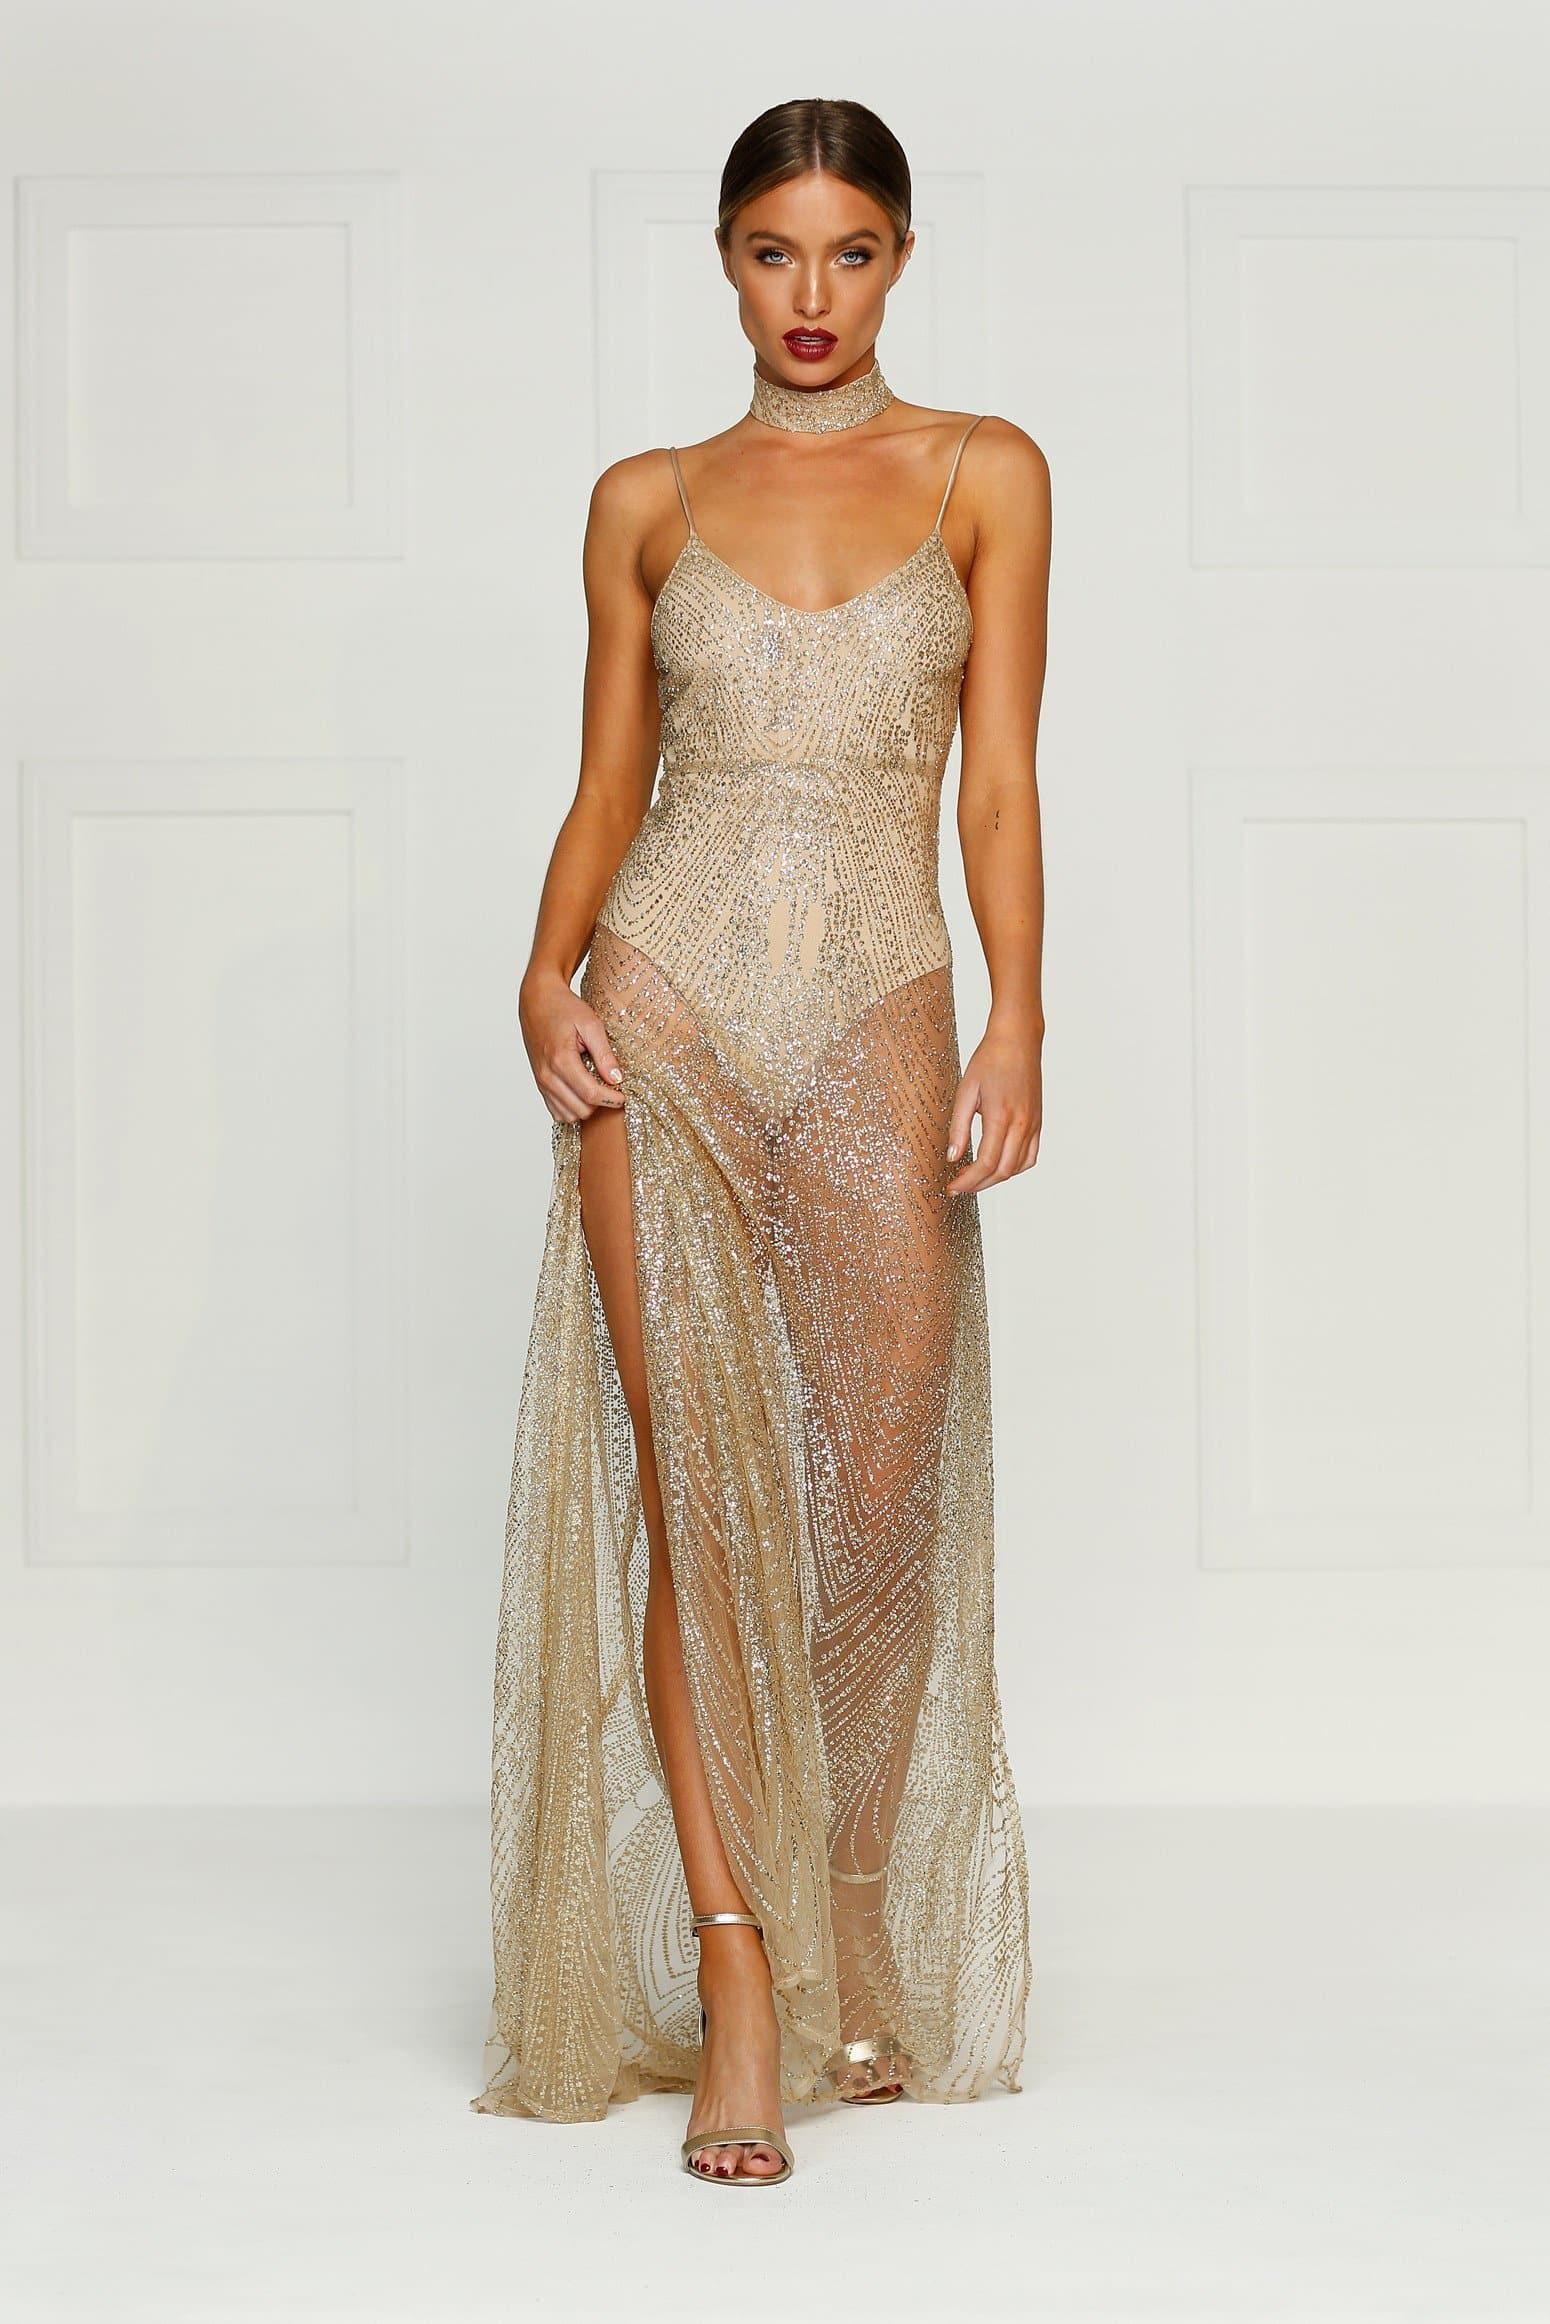 53371770628 Jewels Gown - Gold Evening Dress Made from Satin Fabric - Preorder